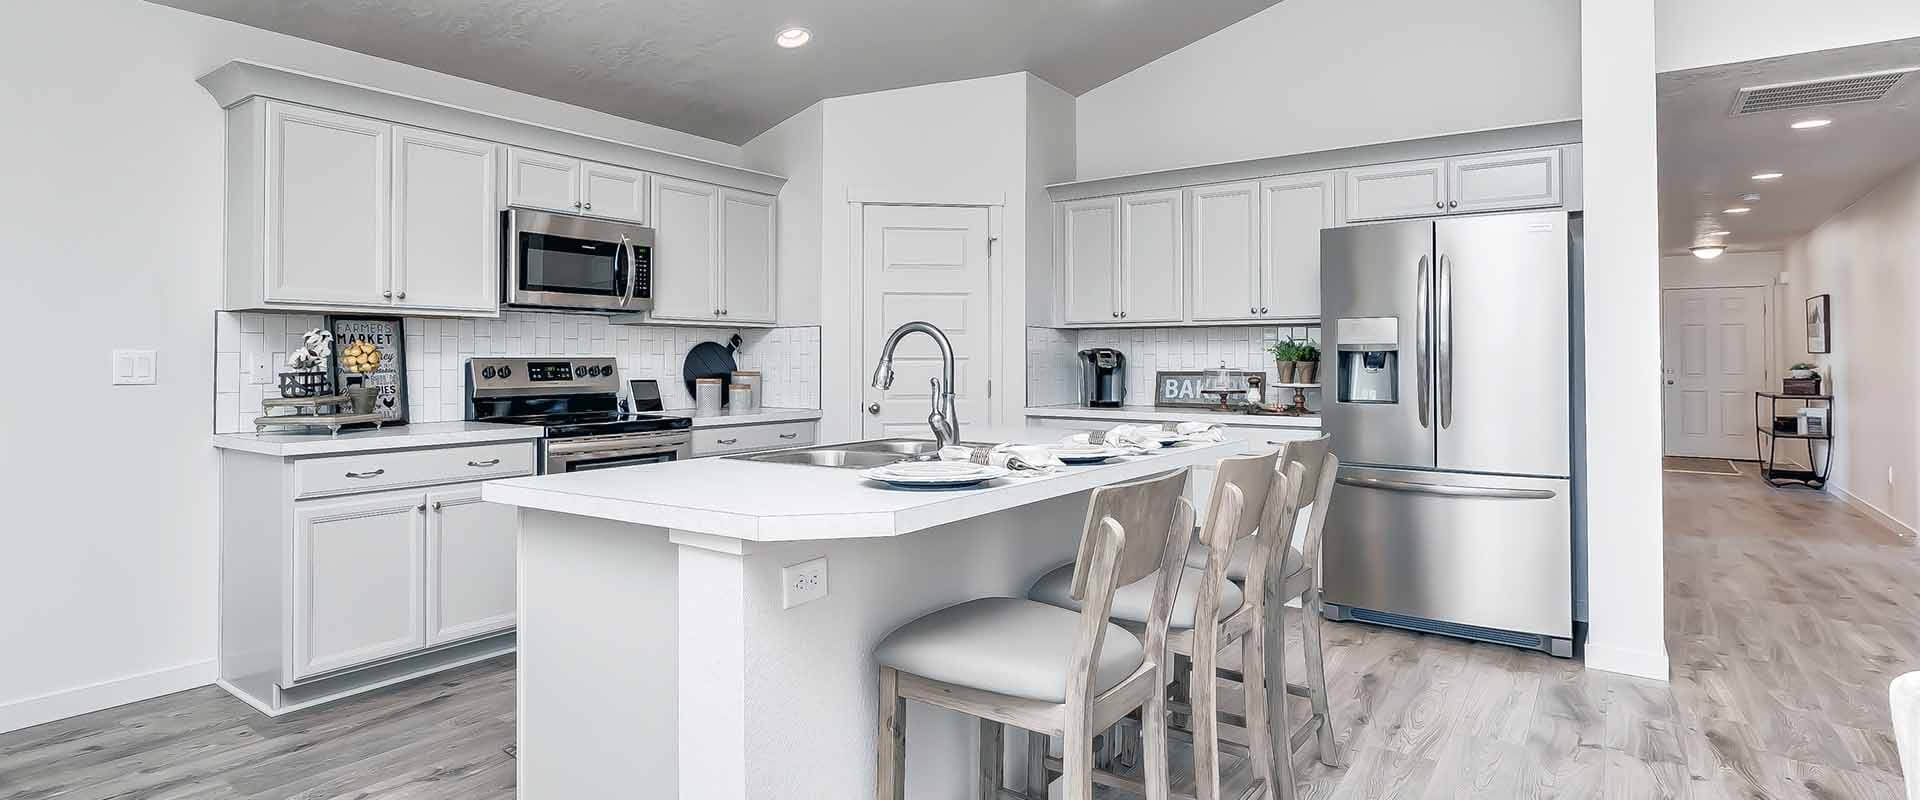 Eagle-Stream-New-Homes-Nampa-Idaho-Brookfield-Kitchen.jpg